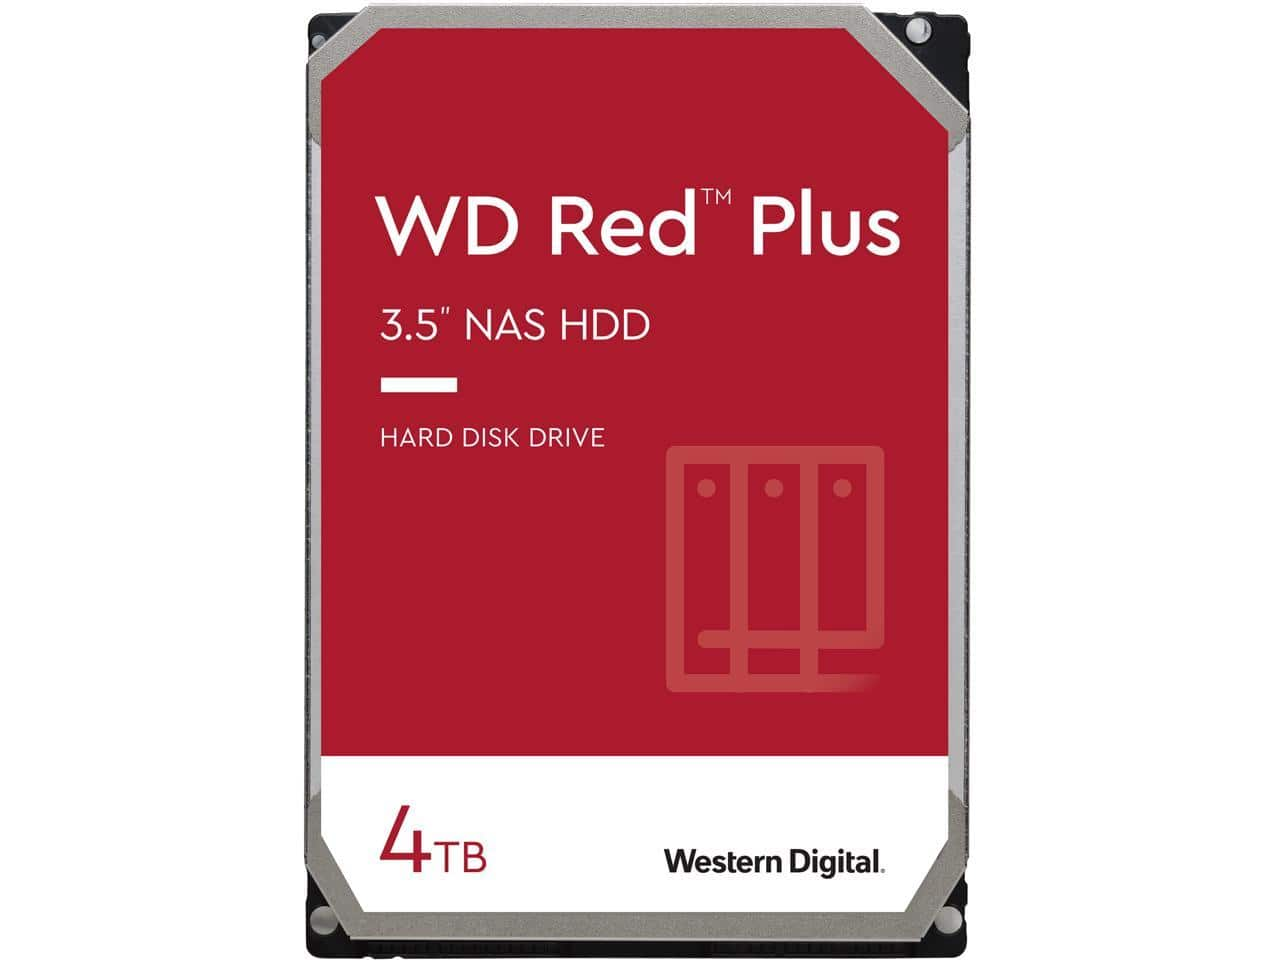 WD 4TB Red Plus NAS HDD $99.99 AC shipped @newegg, 5400 RPM 64MB Cache 3.5 Inch, WD40EFRX